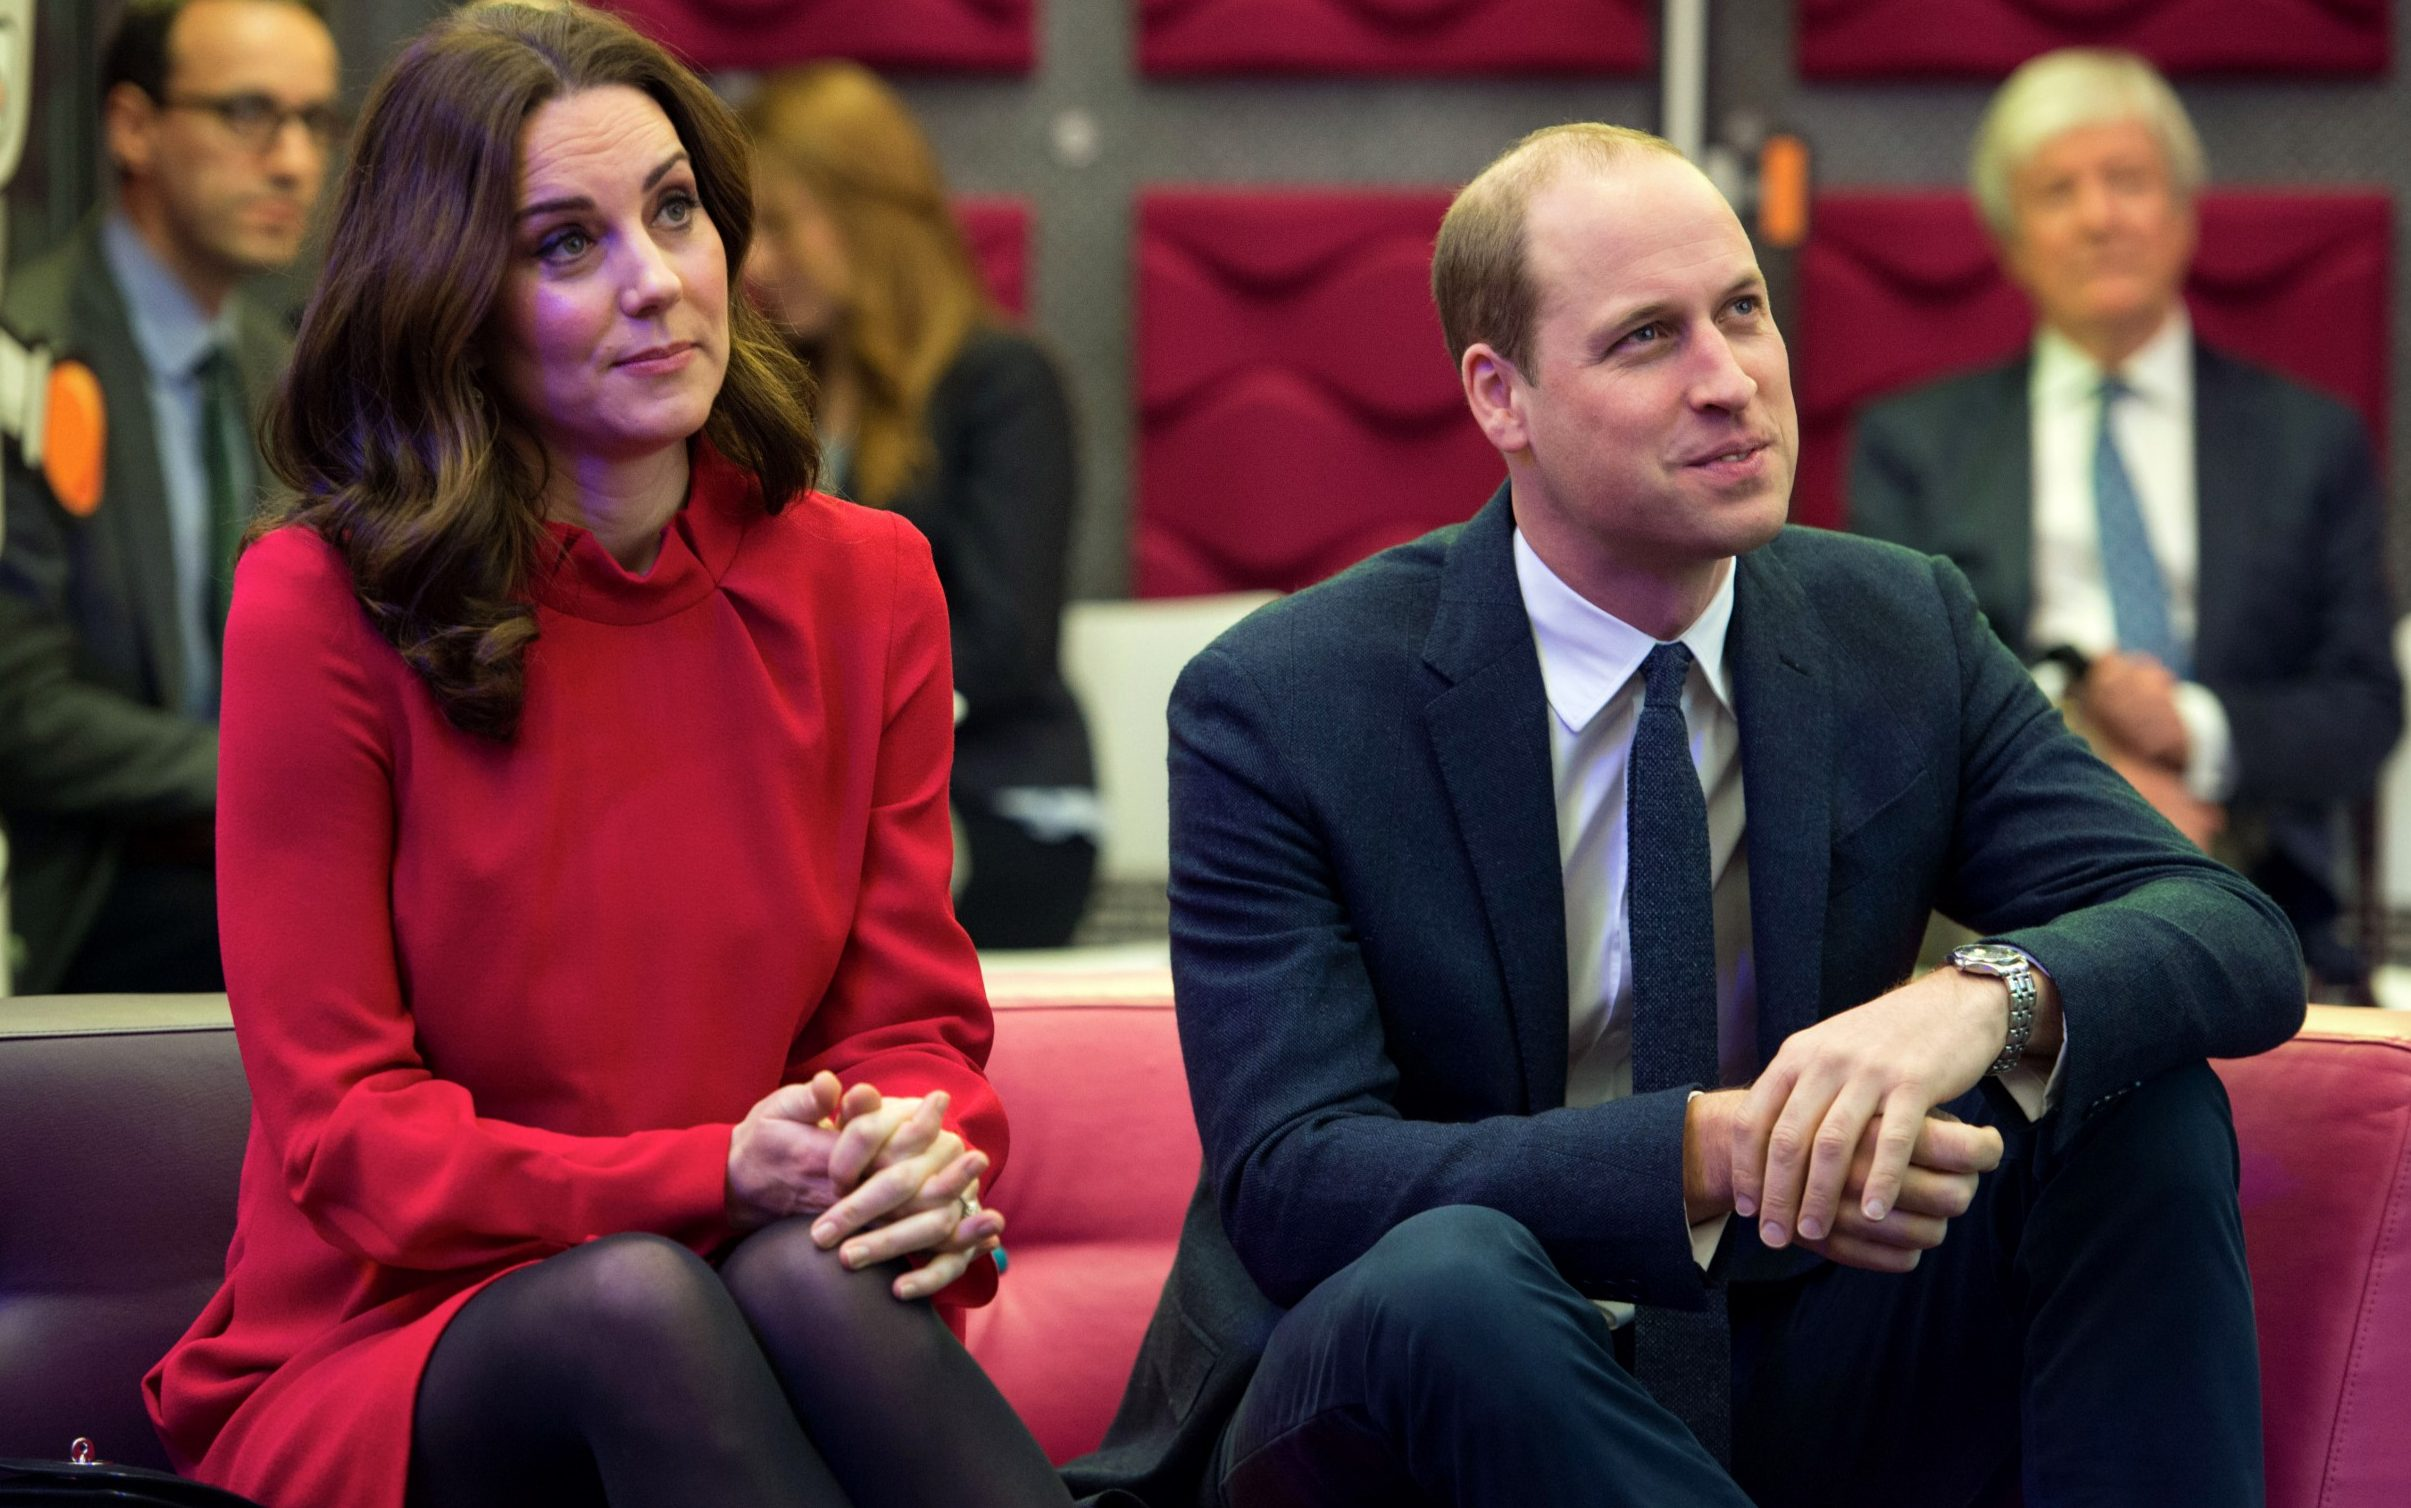 The Duke and Duchess of Cambridge listen to a presentation before speaking to school children